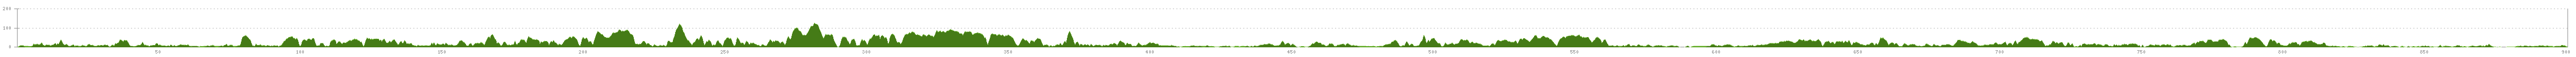 Elevation profile Cycle Route La Littorale Roscoff - Nantes